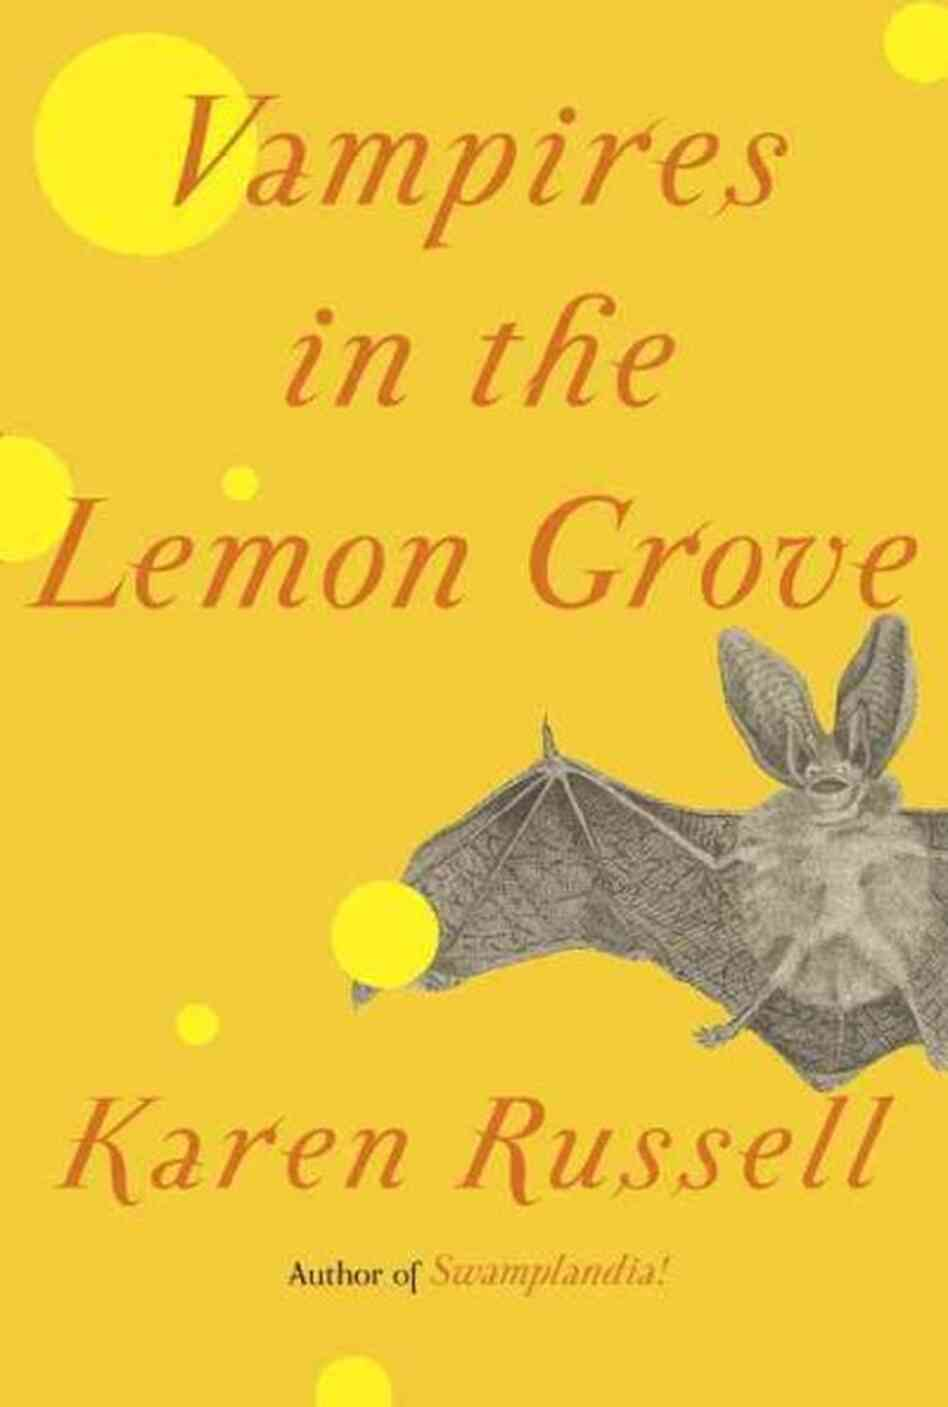 http://media.npr.org/assets/bakertaylor/covers/v/vampires-in-the-lemon-grove/9780307957238_custom-35649163fa293e427198109d474a3c242f33d133-s6-c30.jpg